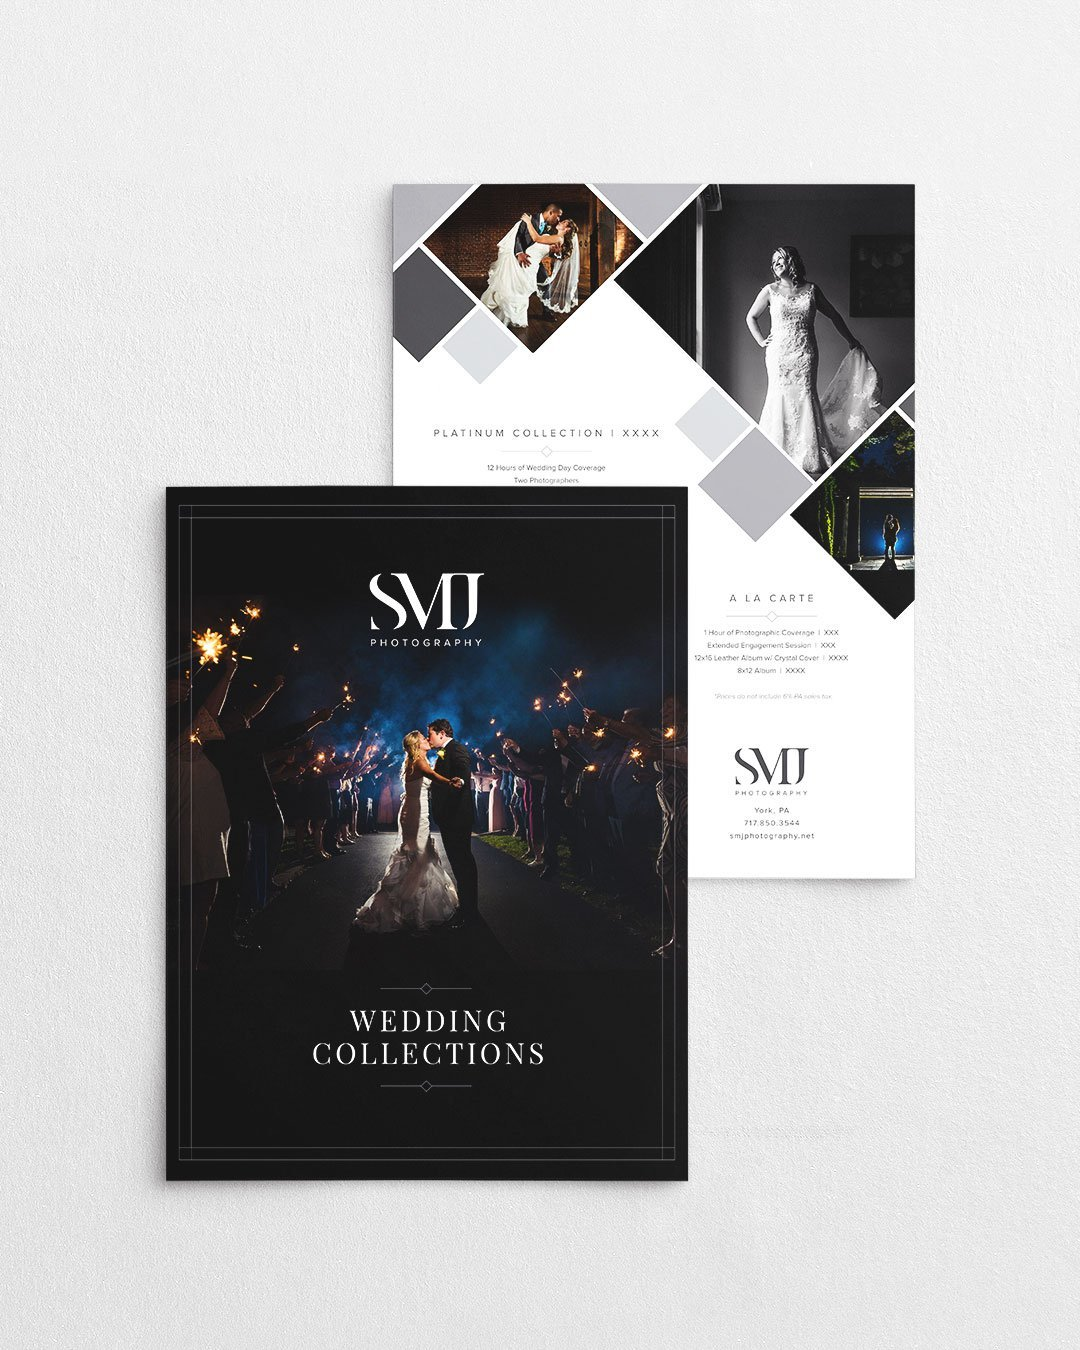 photographer price sheet design smj photography pricing guide by taney creative